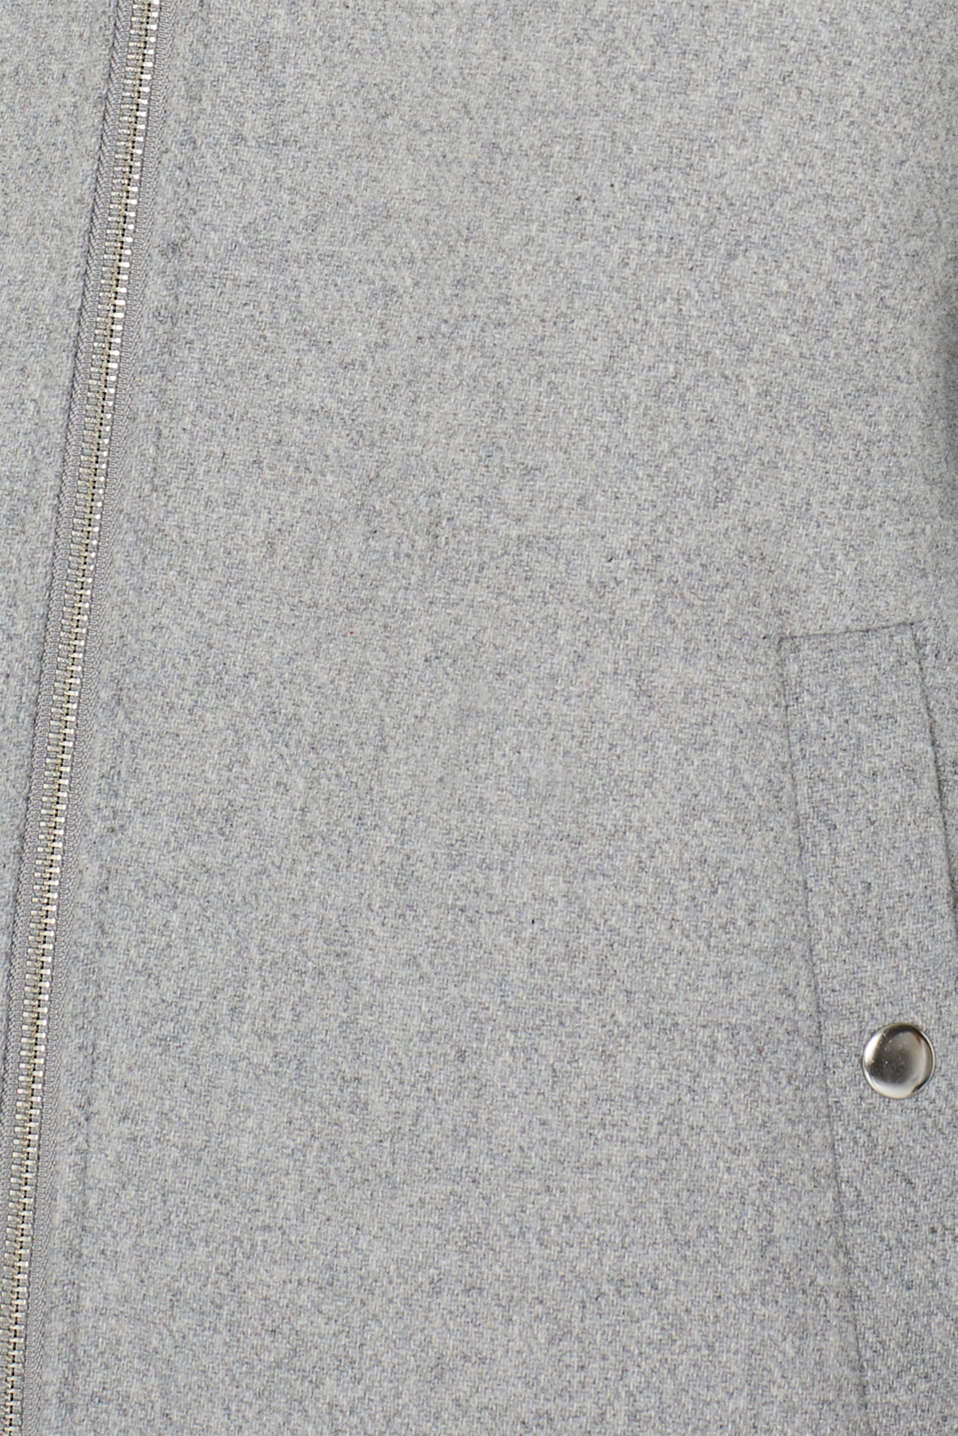 Jackets outdoor woven, LIGHT GREY 5, detail image number 4